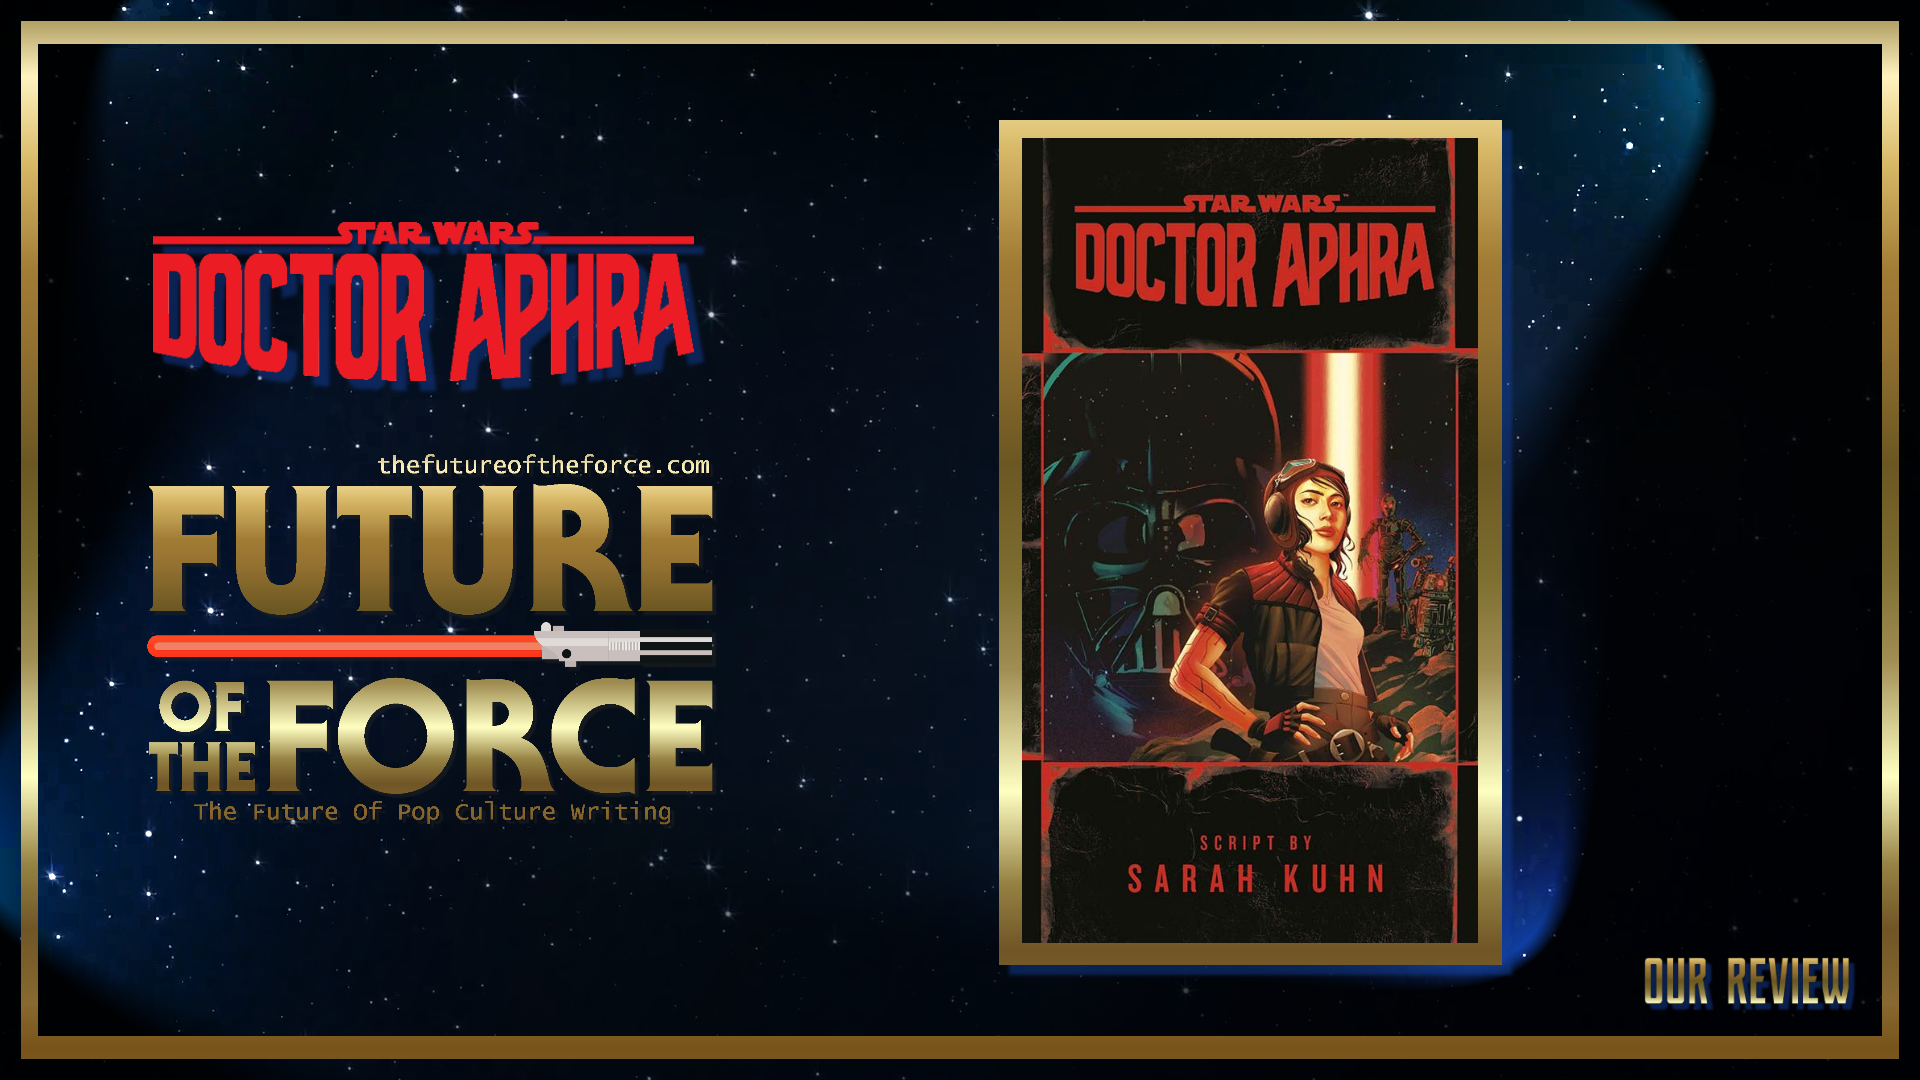 book-review-star-wars-doctor-aphra-script-book